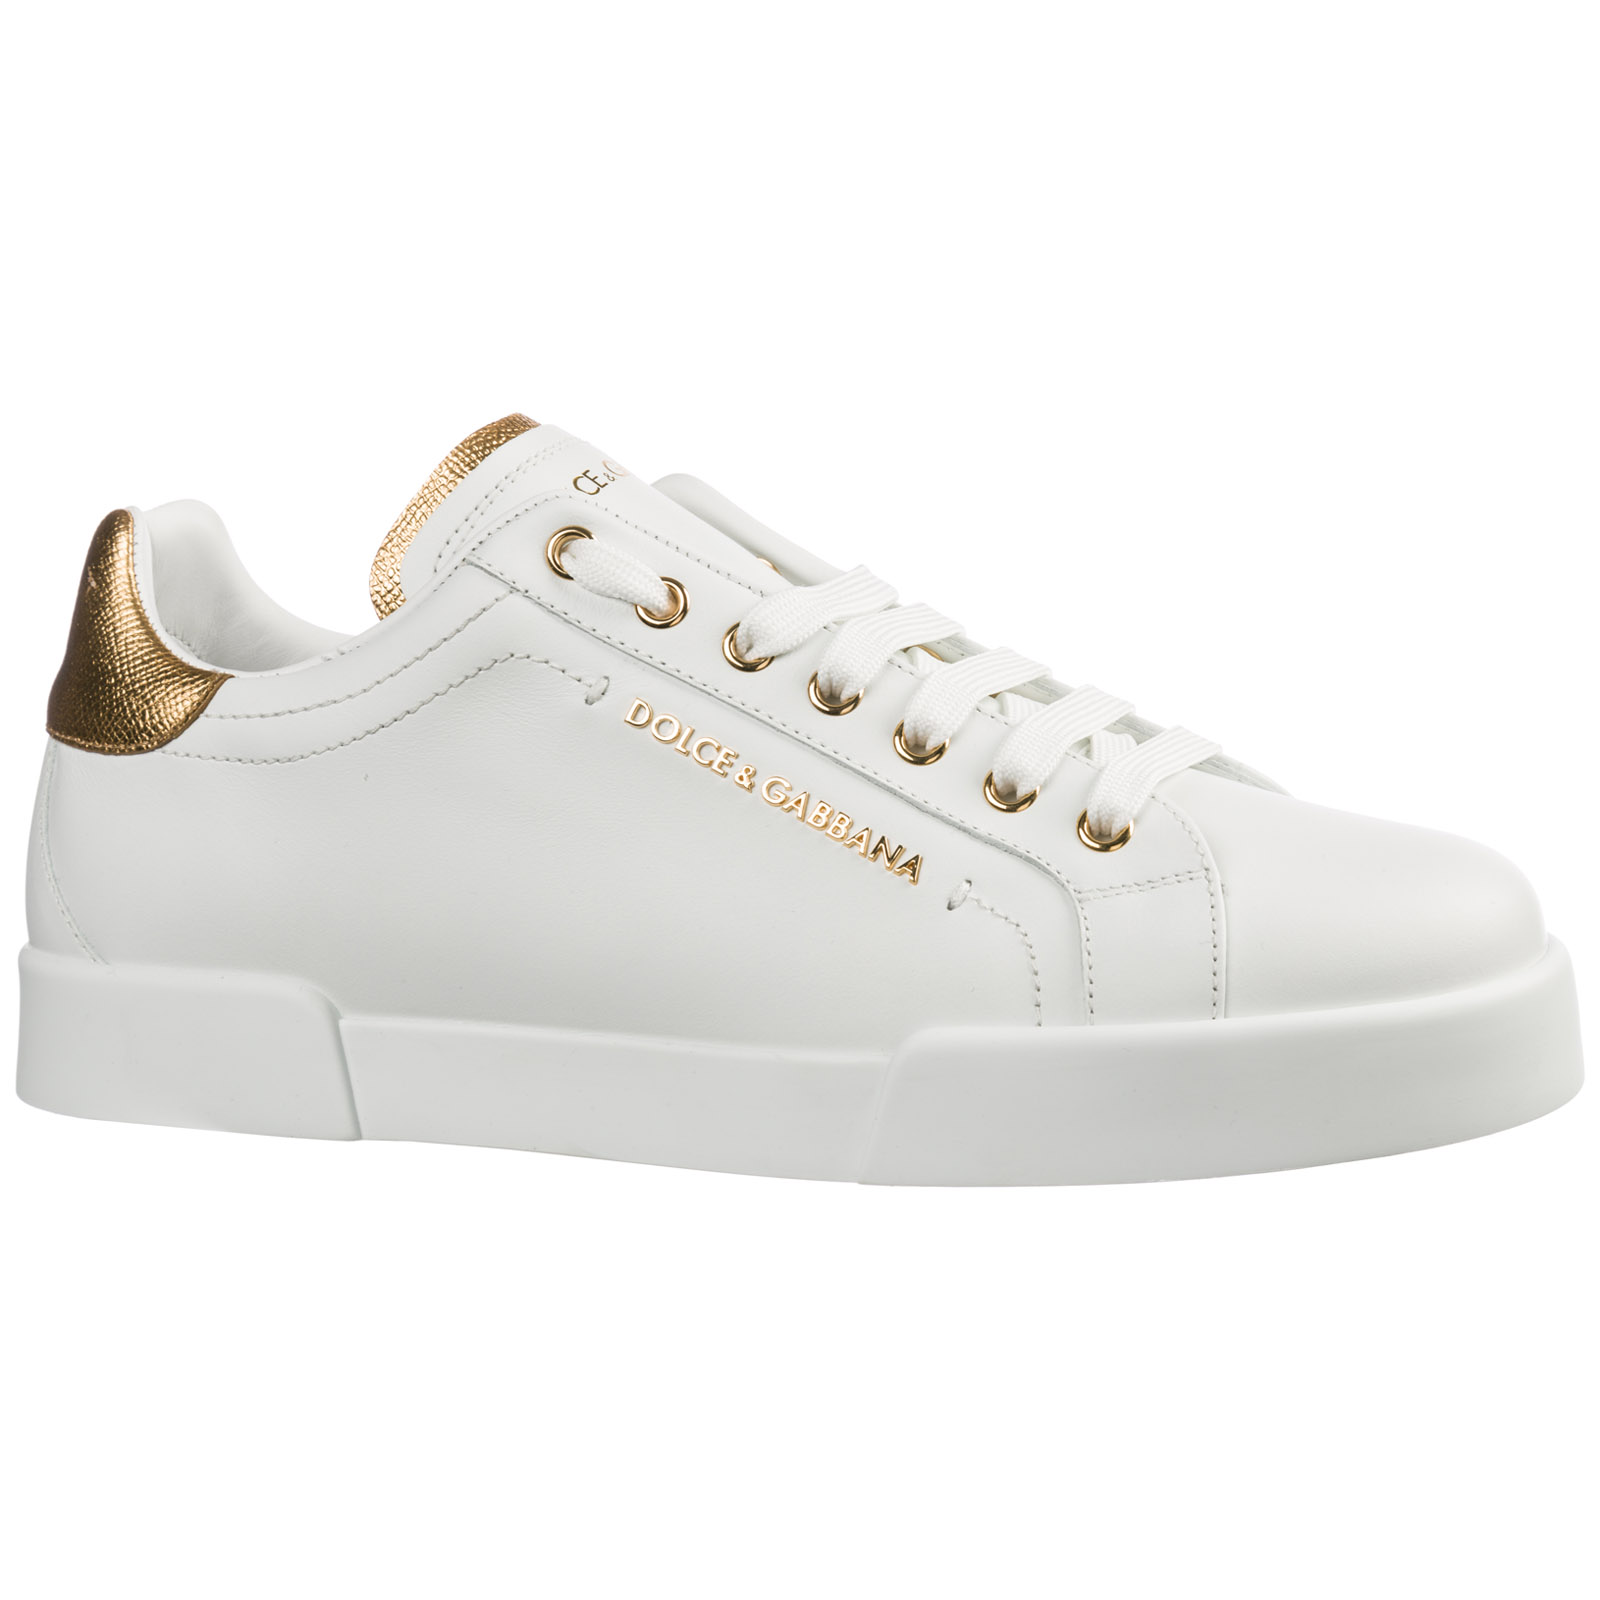 Men's shoes leather trainers sneakers portofino light